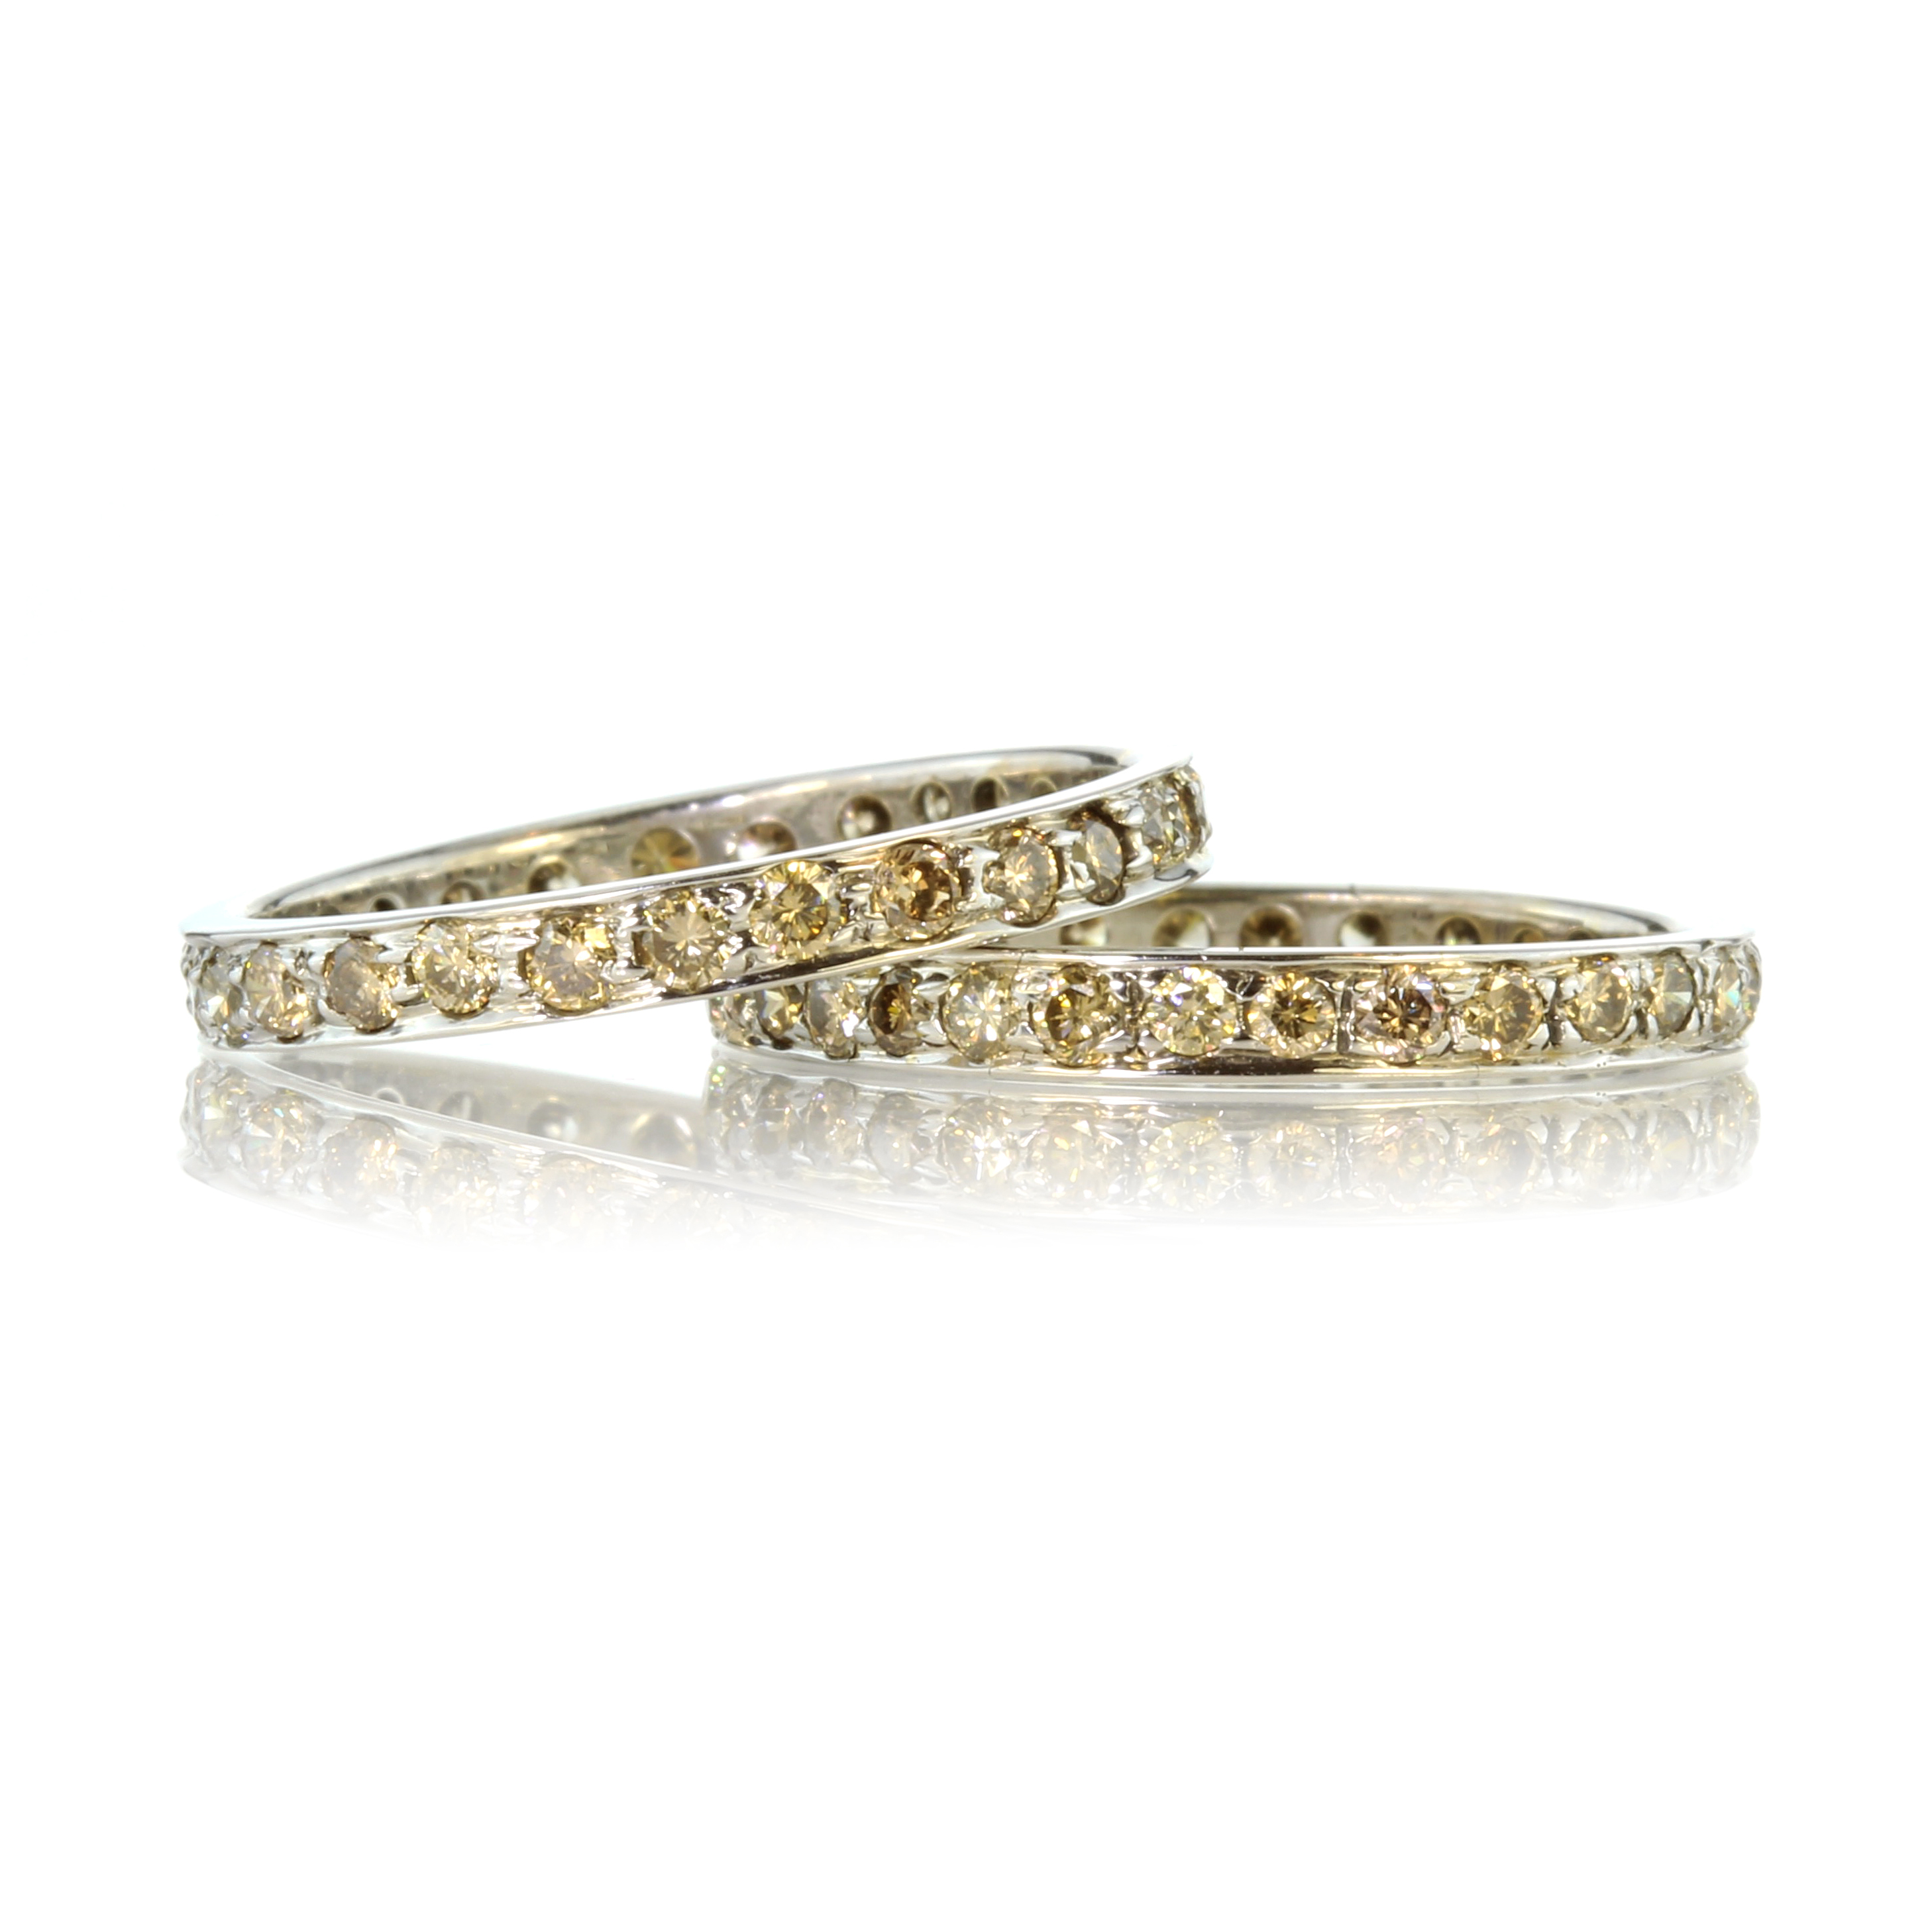 Los 48 - A pair of yellow diamond eternity rings in white gold each set with round cut yellow diamonds.